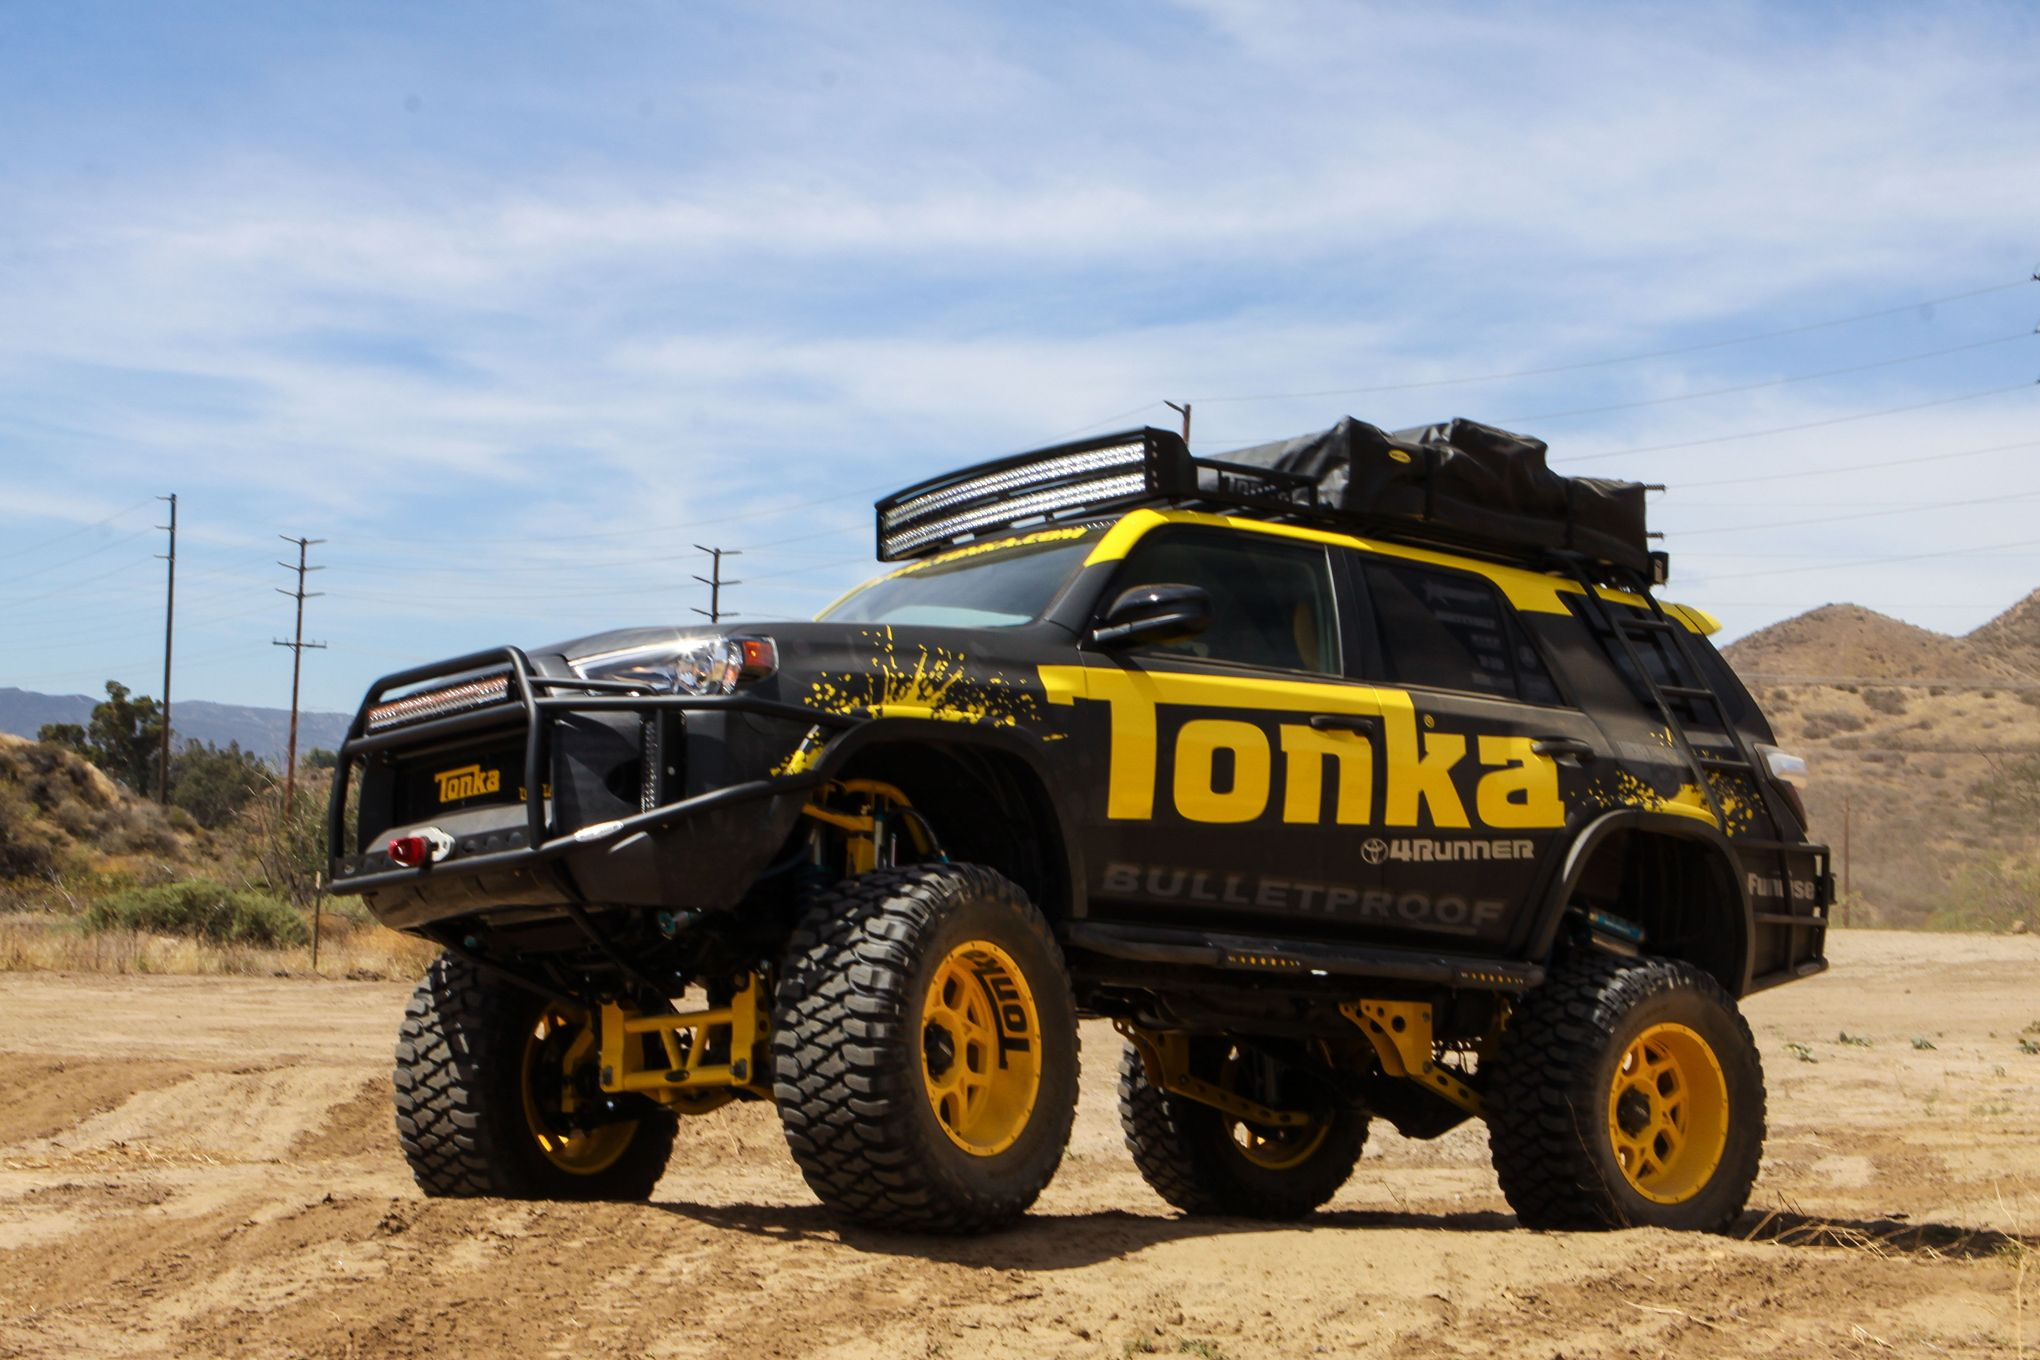 This Custom Toyota 4runner Is Tonka Toys Newest Full Size